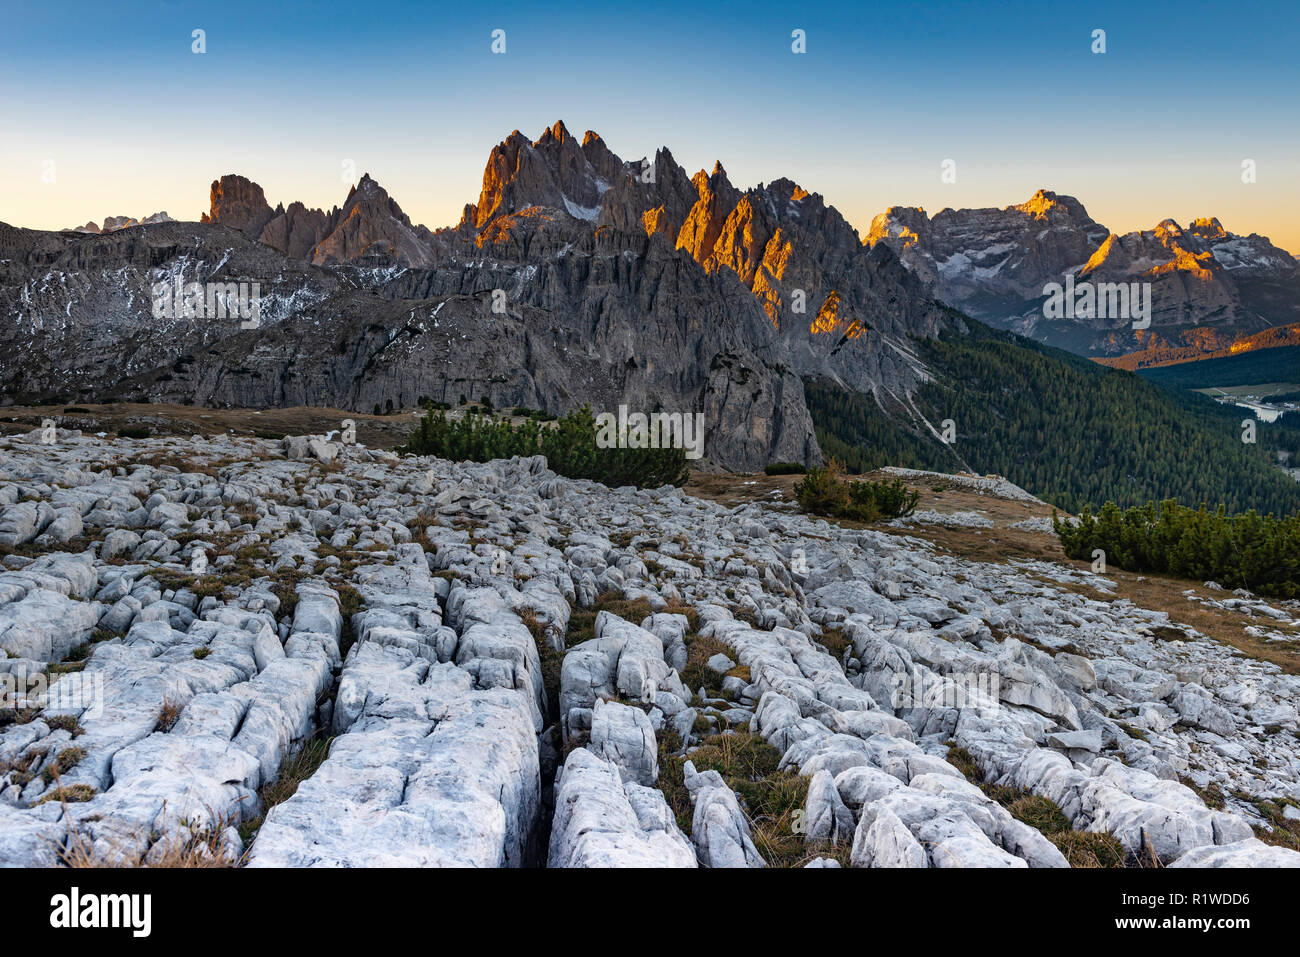 Karst mountains, Dolomites with first sunlight, South Tyrol, Italy Stock Photo